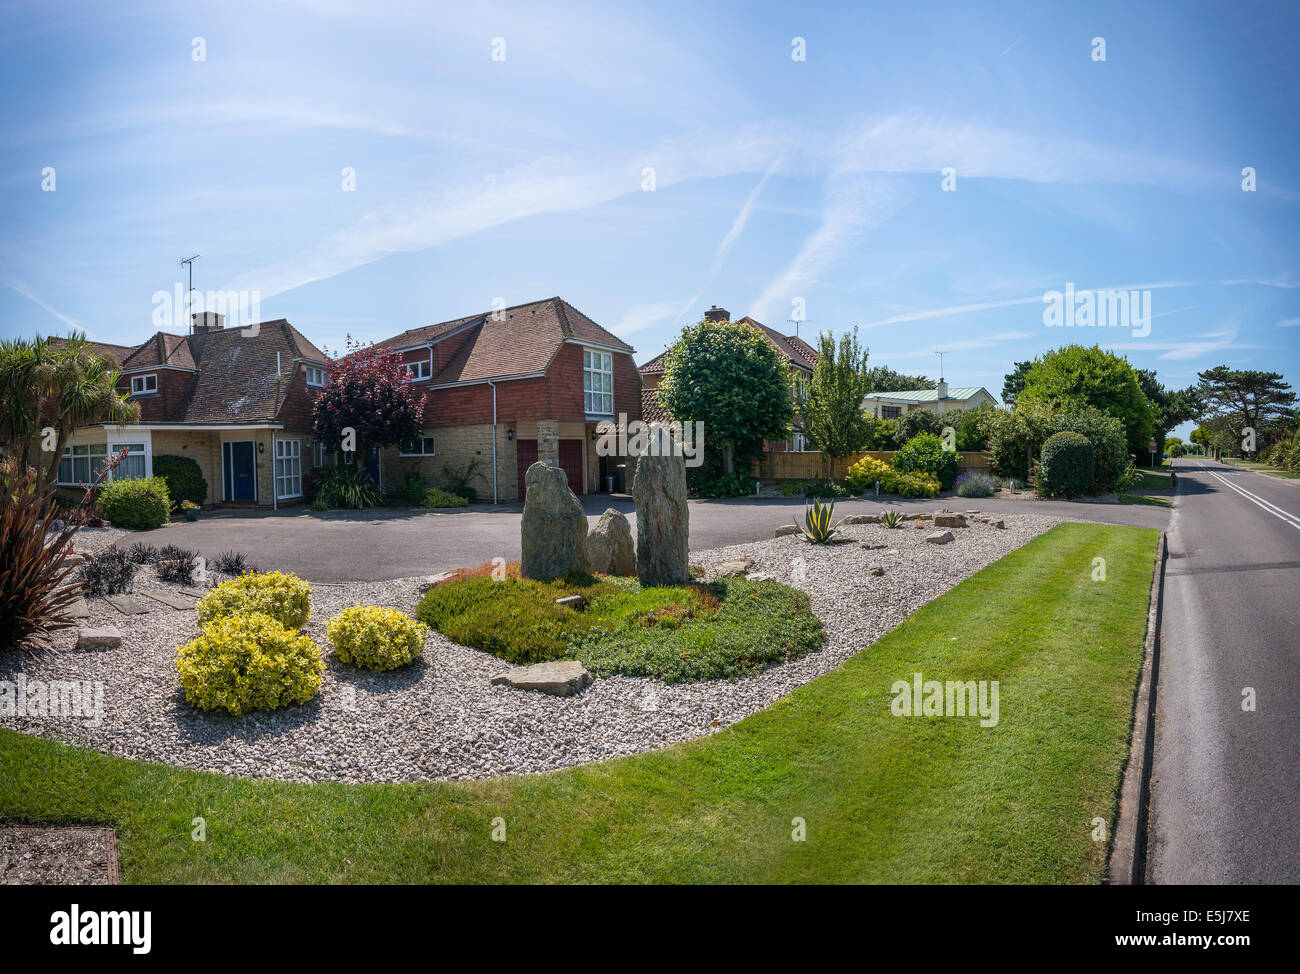 Modern standing stones in a posh suburb between Worthing and Littlehampton, West Sussex, UK - Stock Image